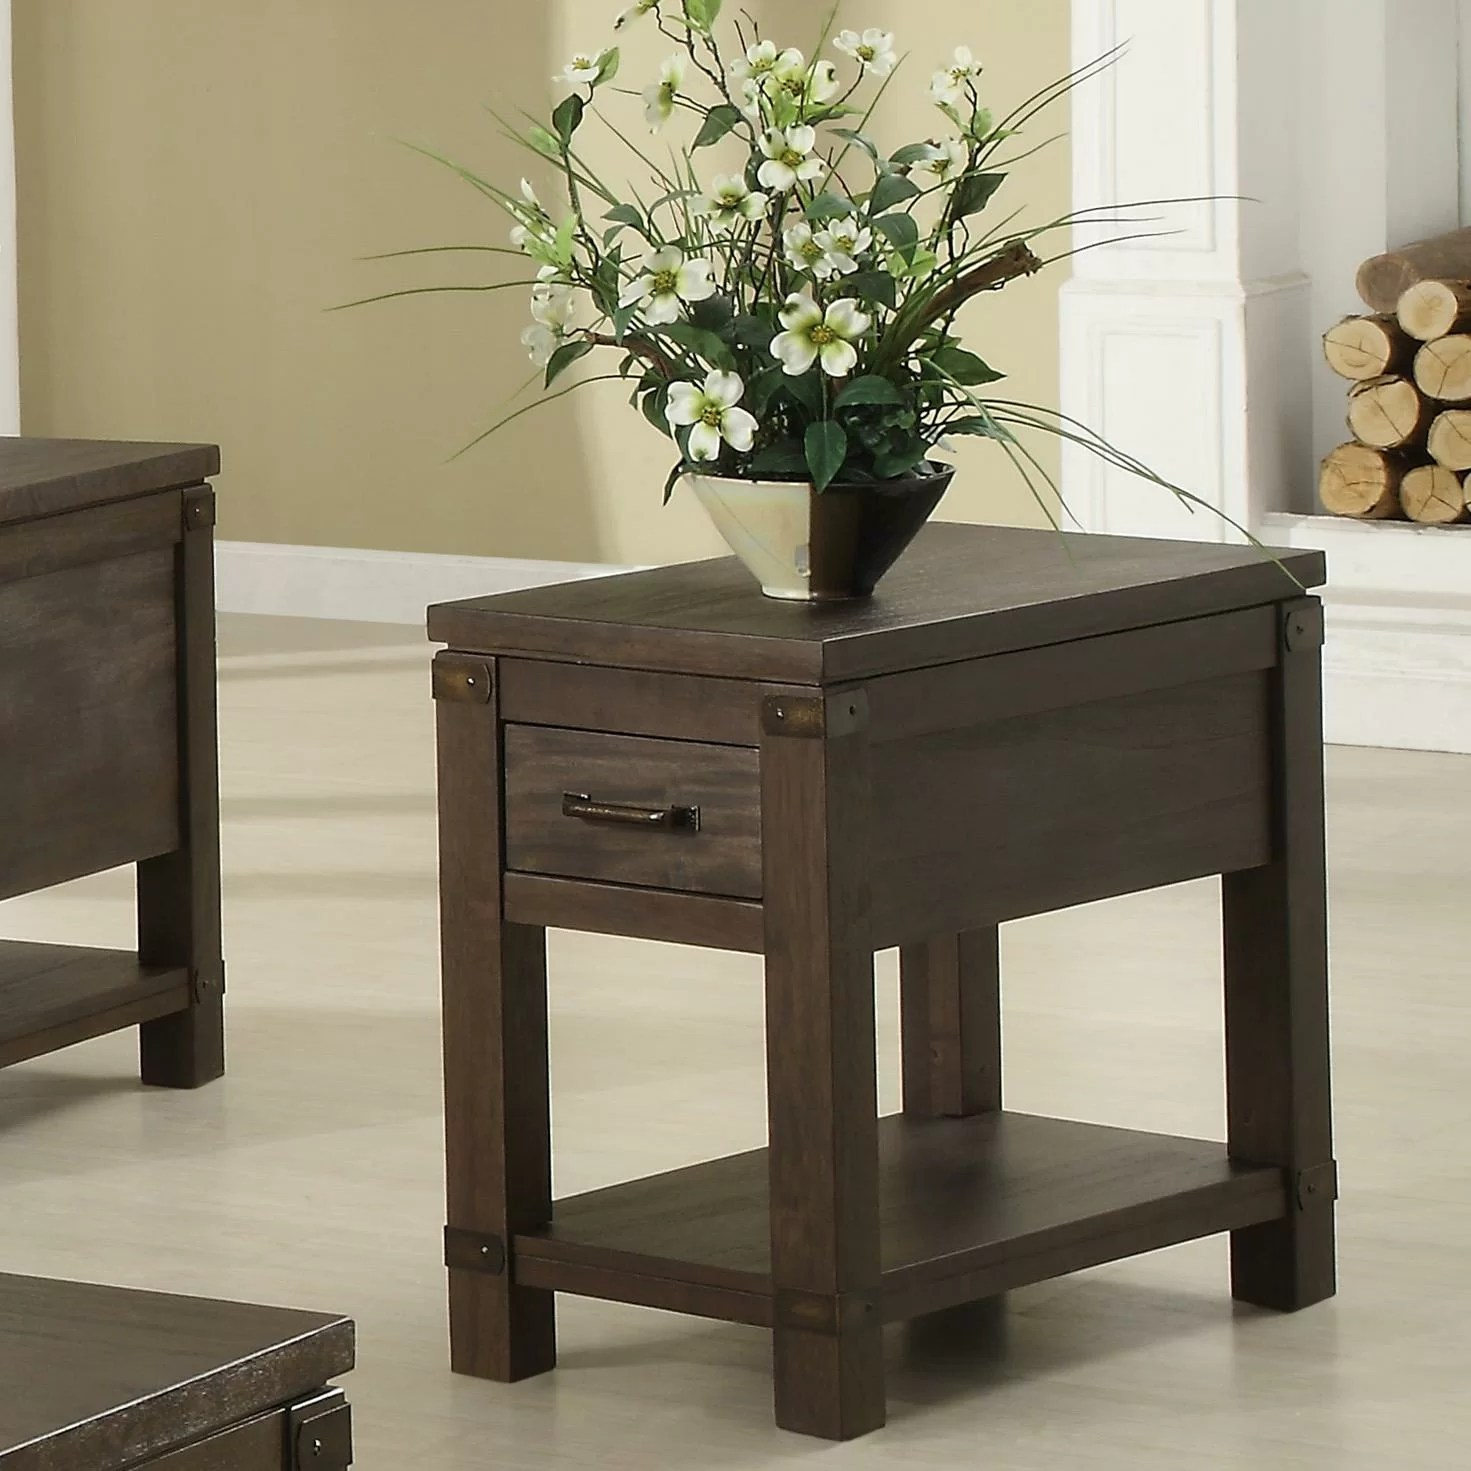 Chair Side Table Riverside Furniture Promenade Chairside Table And Reviews